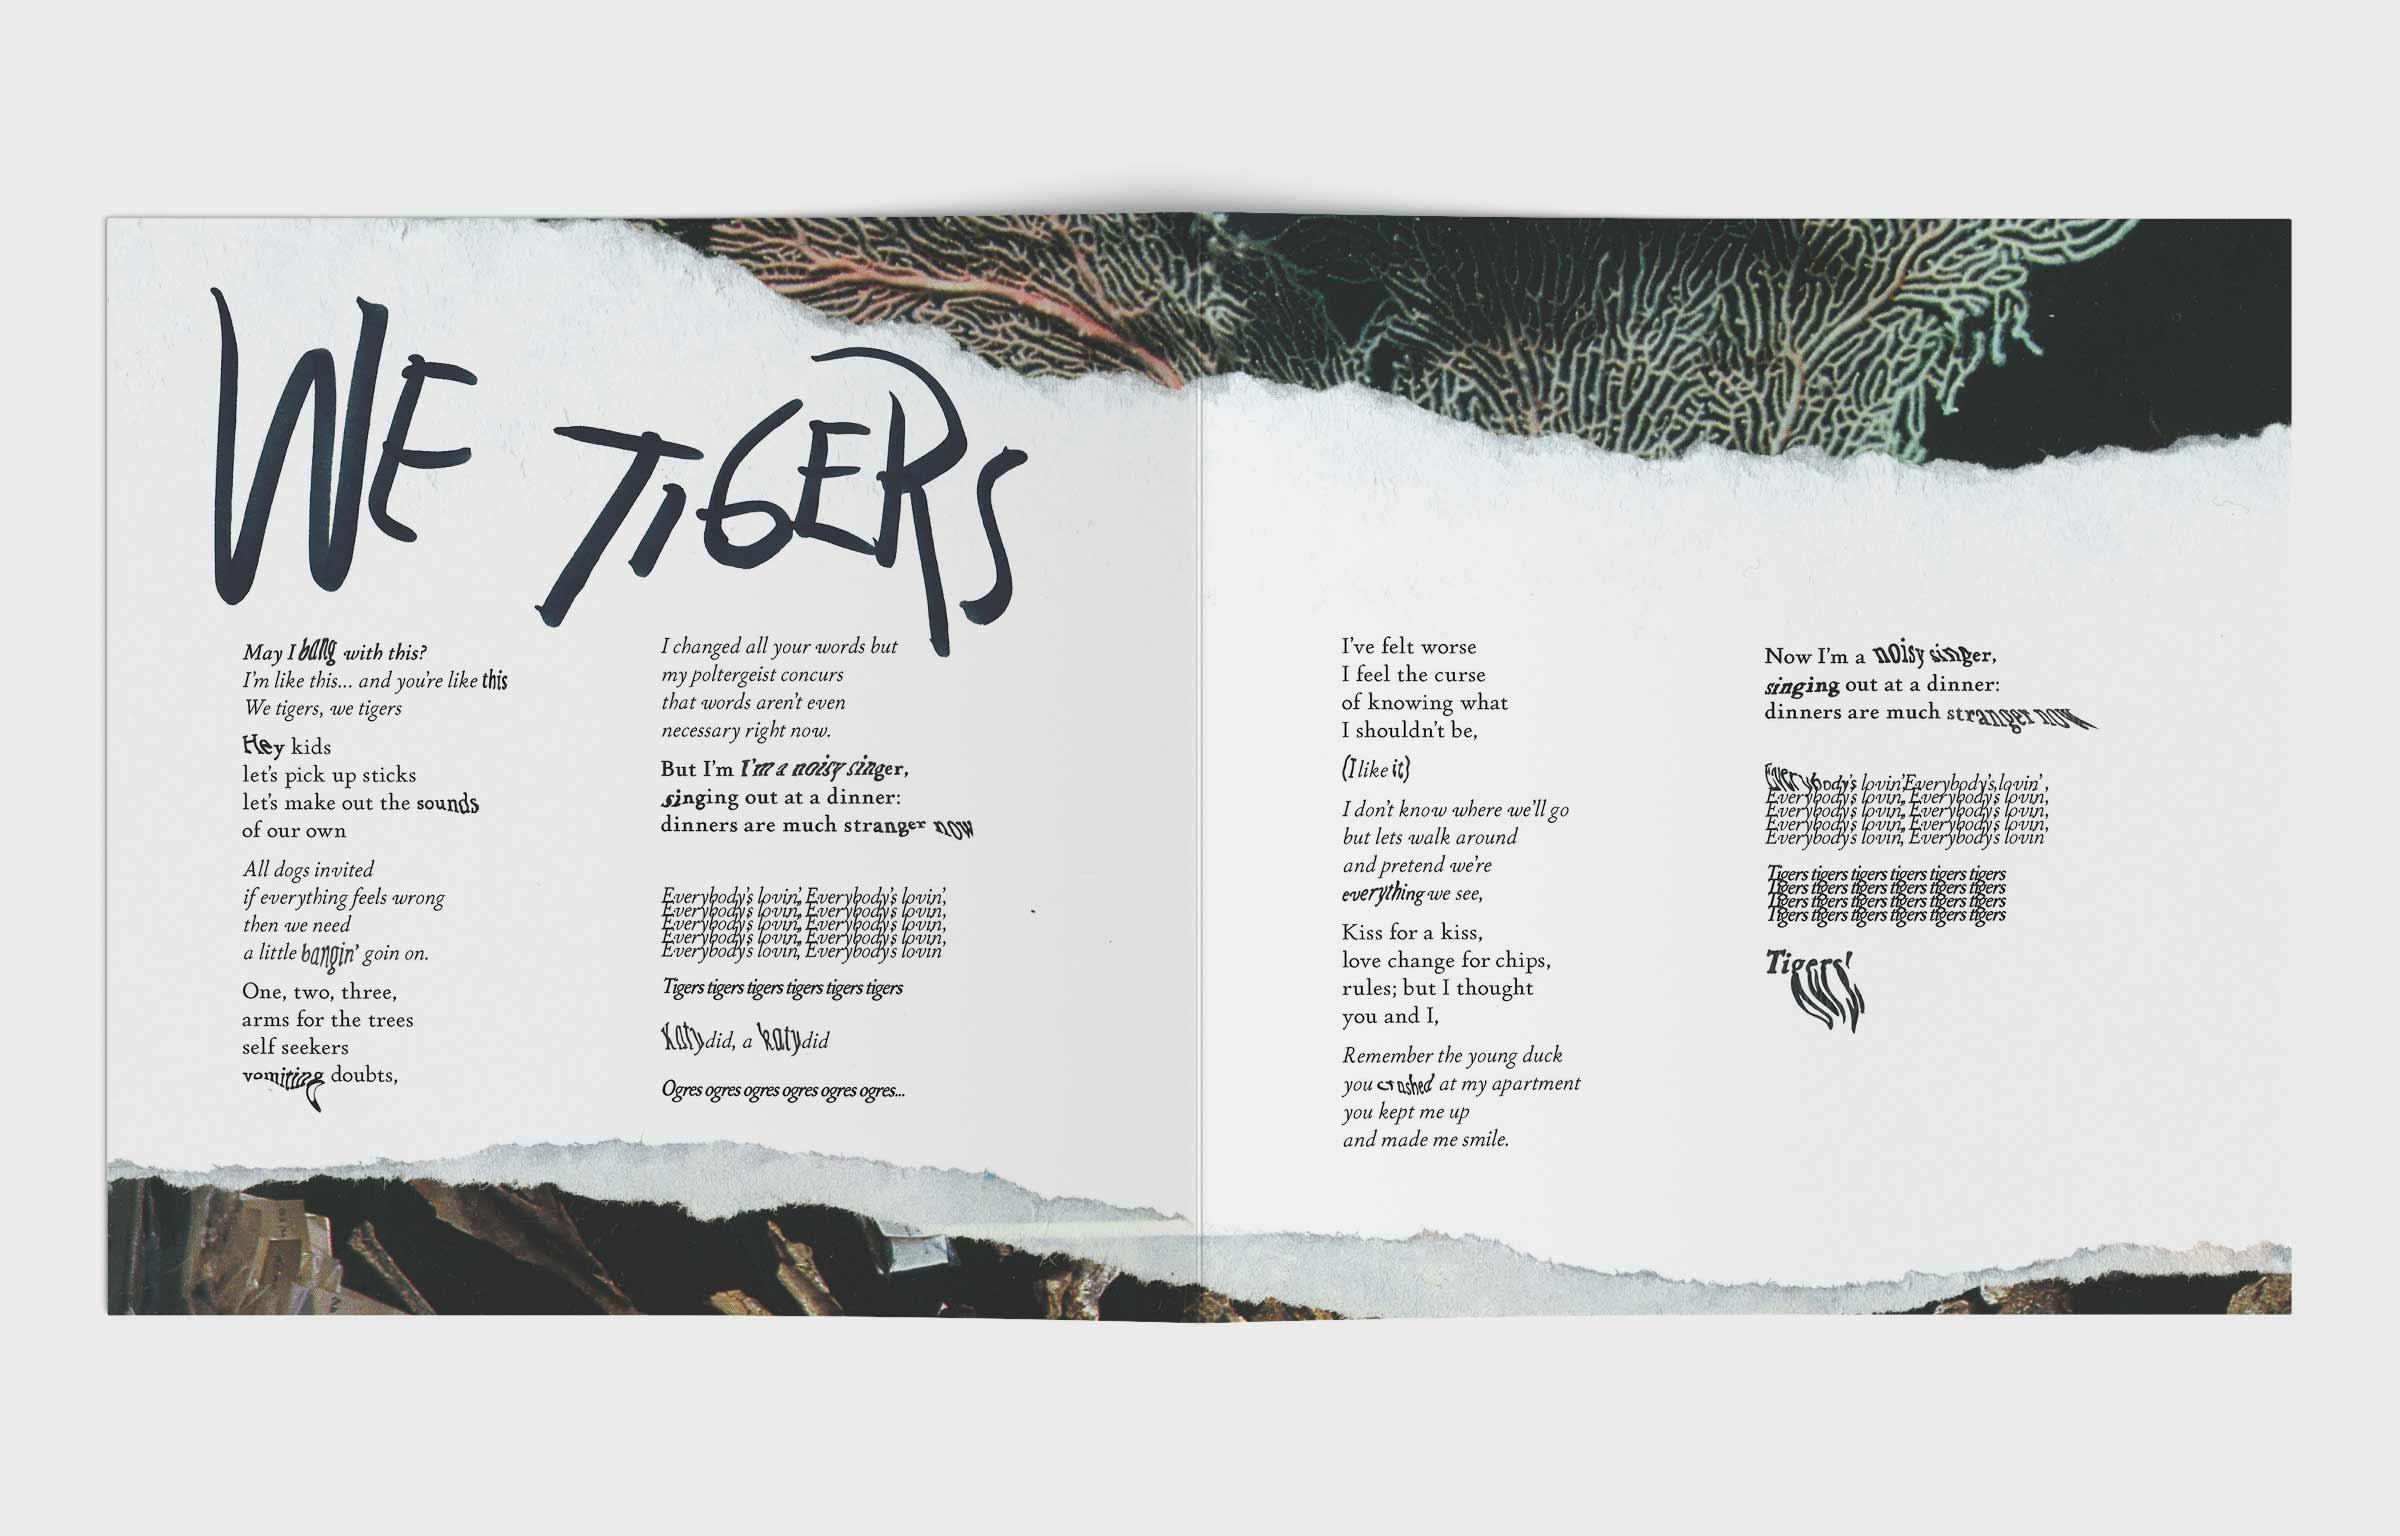 Photo of a spread for lyrics of We Tigers by Animal Collective. Spread shows combination of collages, hand warped words, and hand drawn titles.